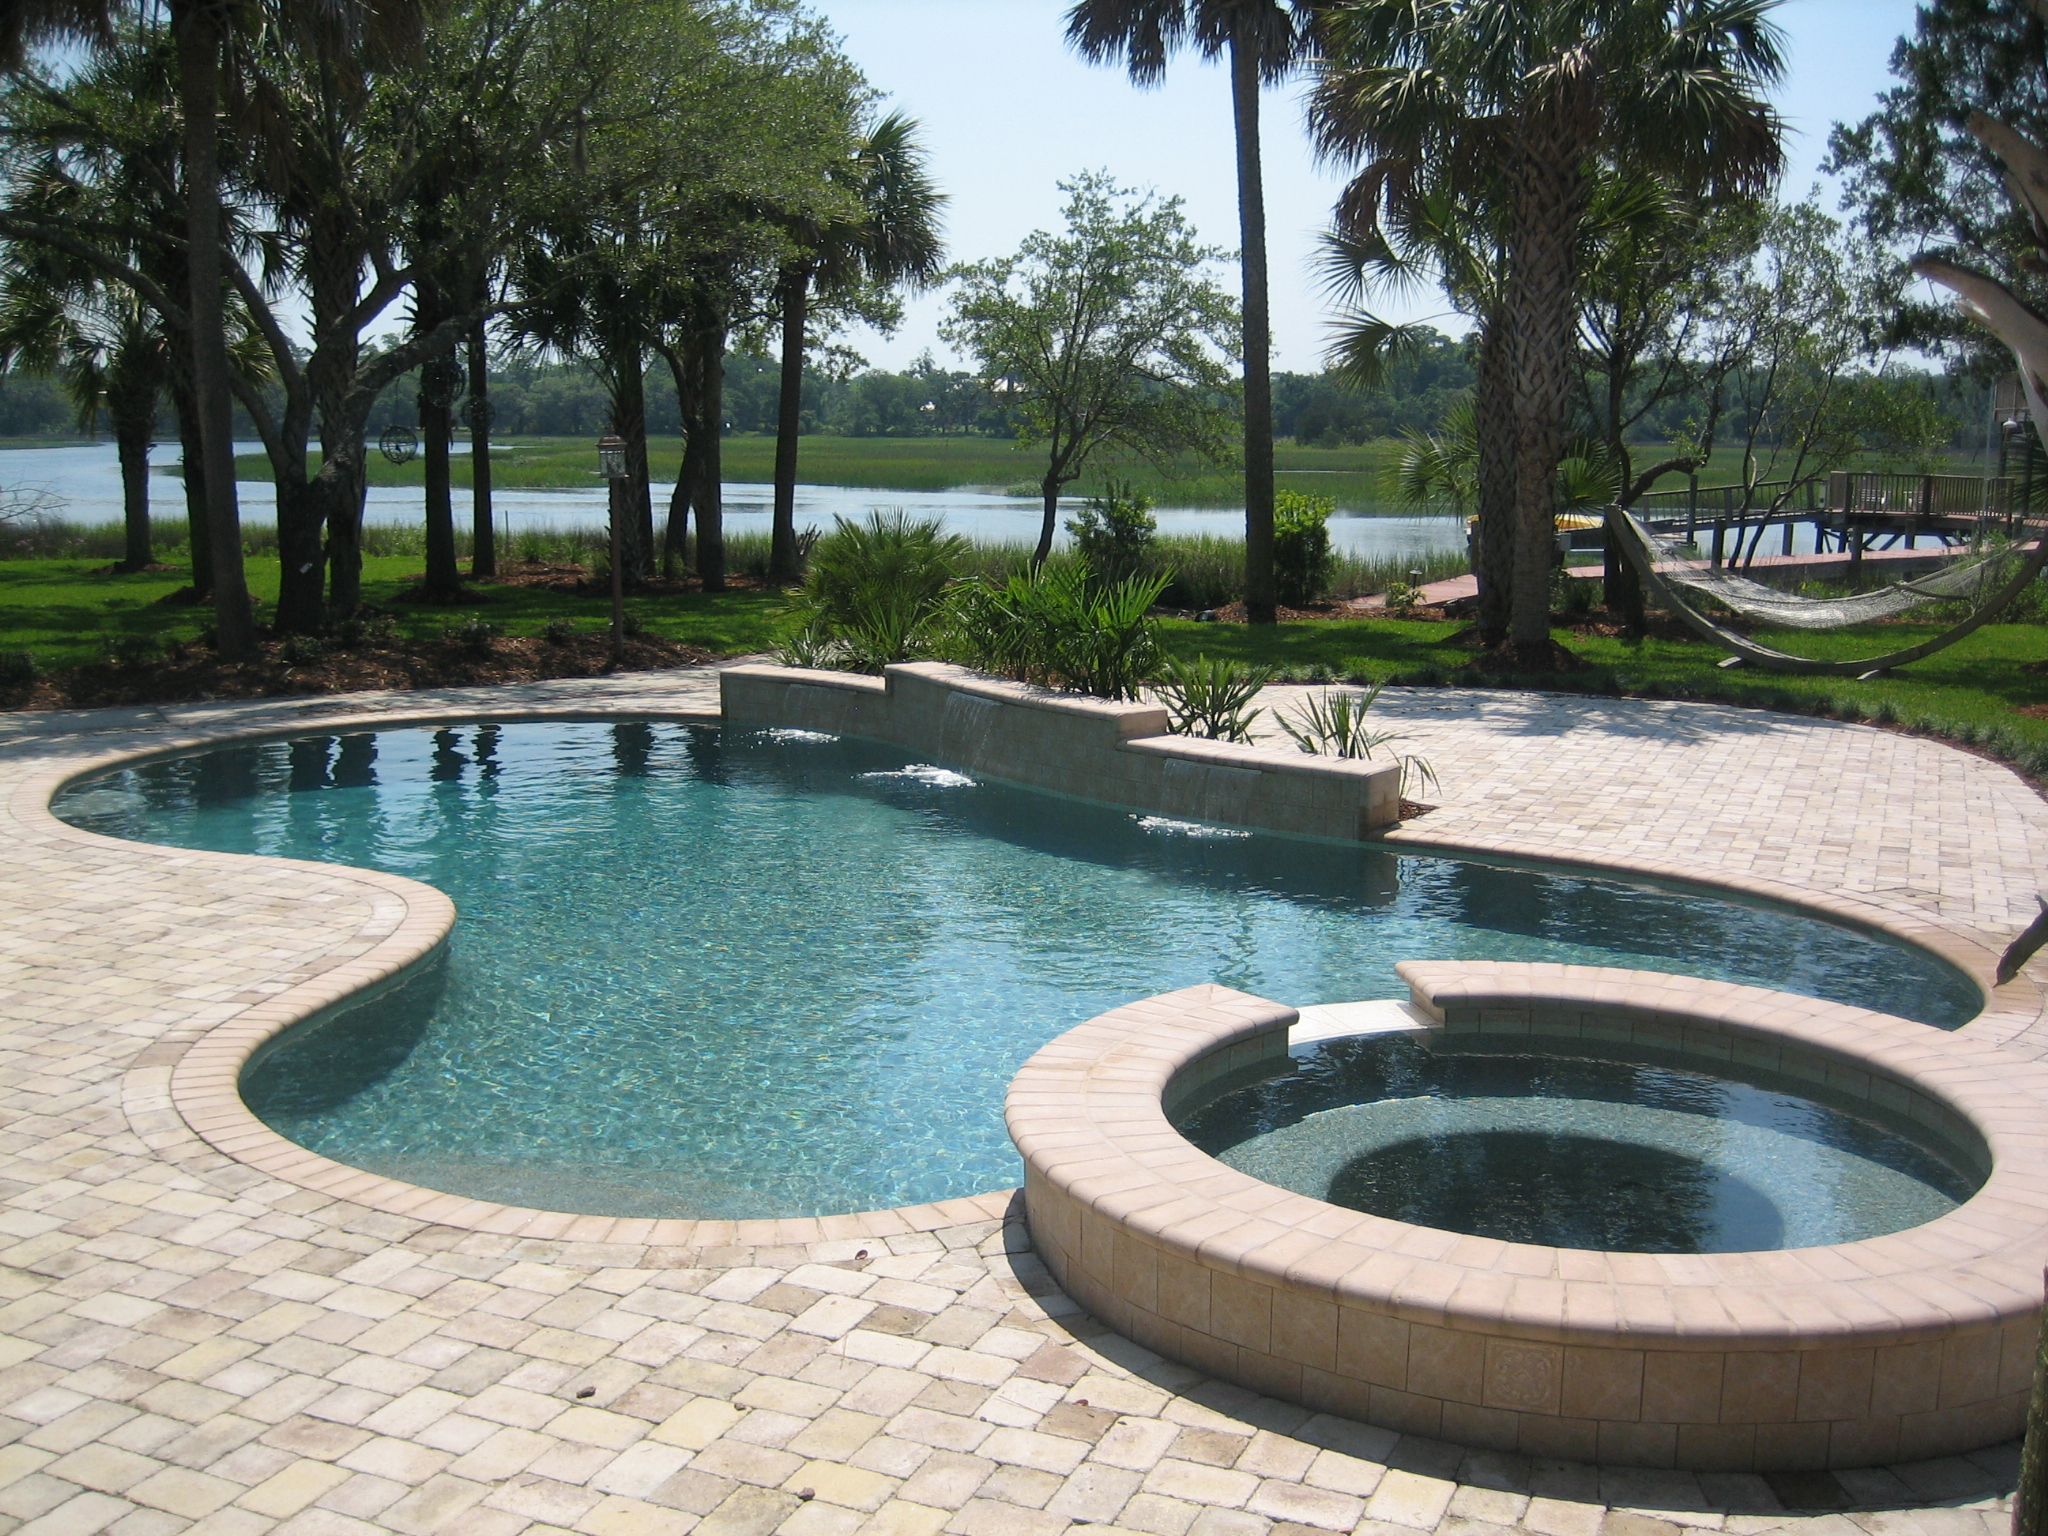 Blue haven pools north charleston sc 29418 angies list for Pool design companies